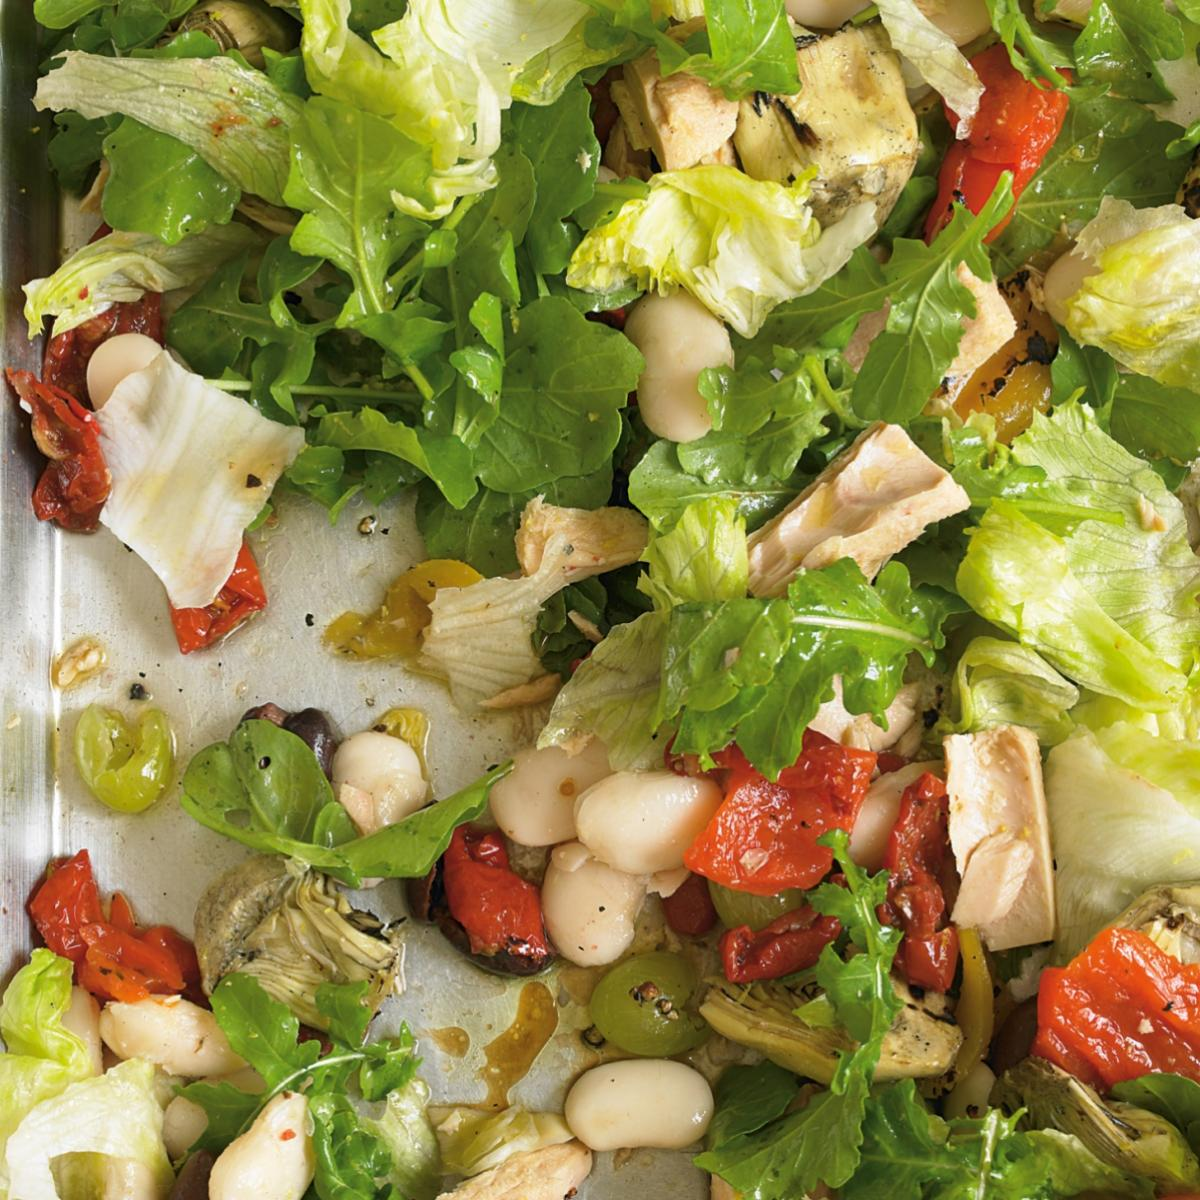 A picture of Delia's Spanish Tuna Salad with Peppers, Olives and Artichokes recipe